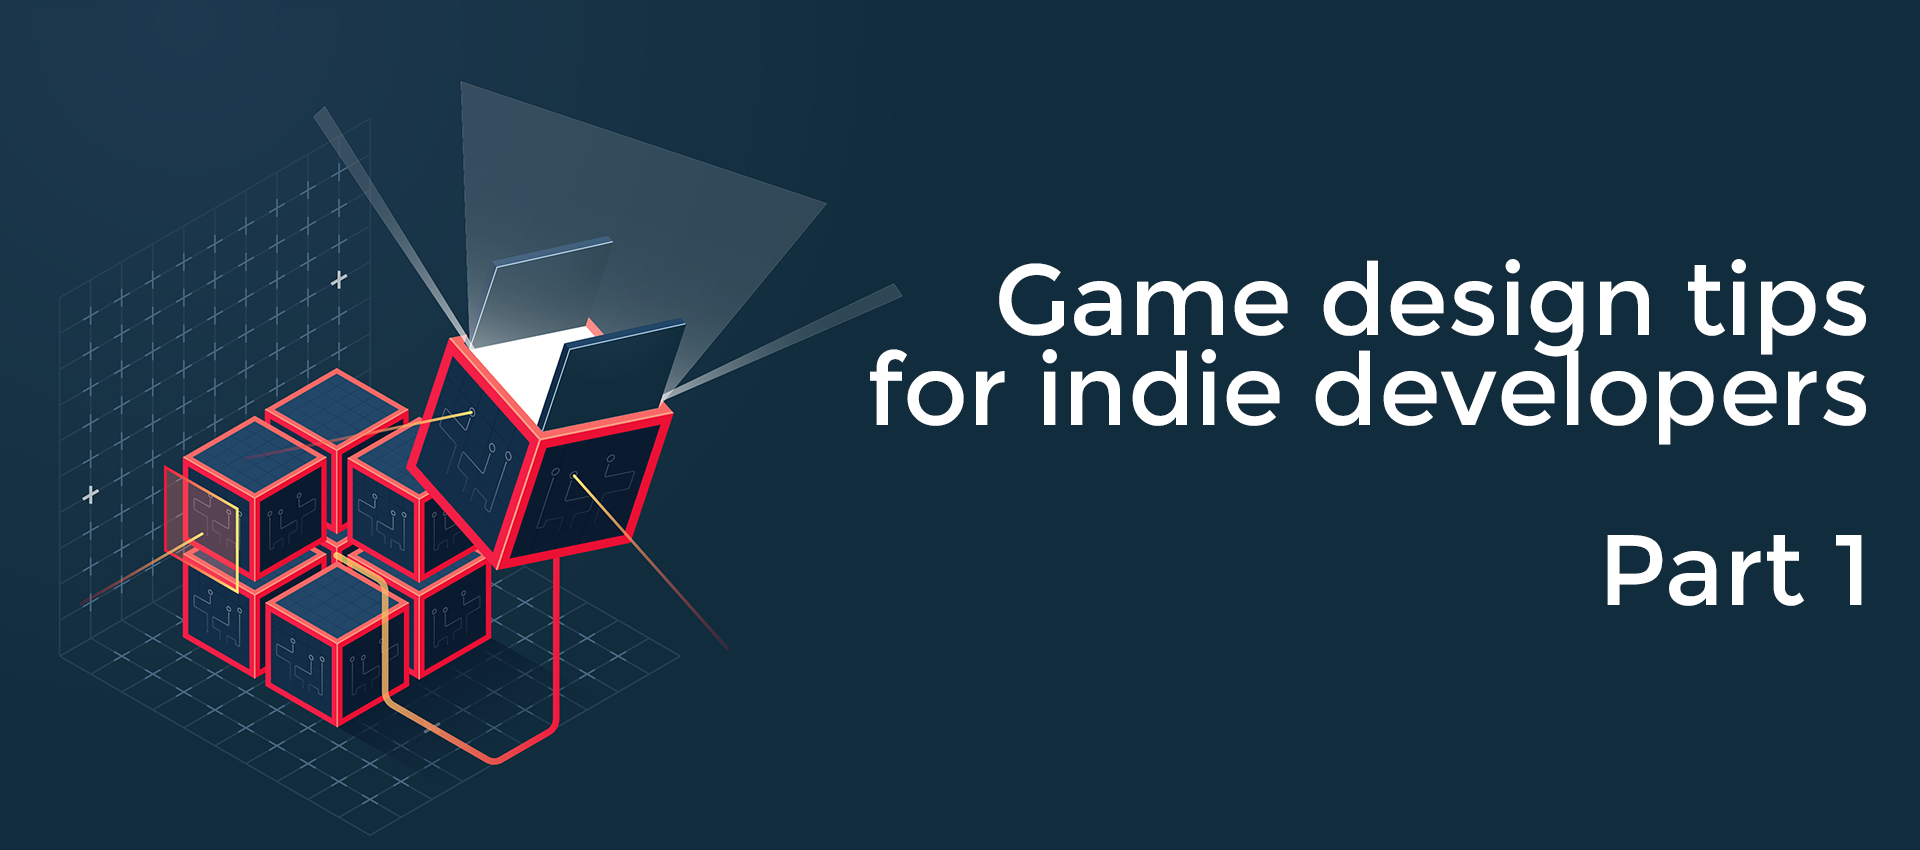 Game design tips for indie developers. Part 1